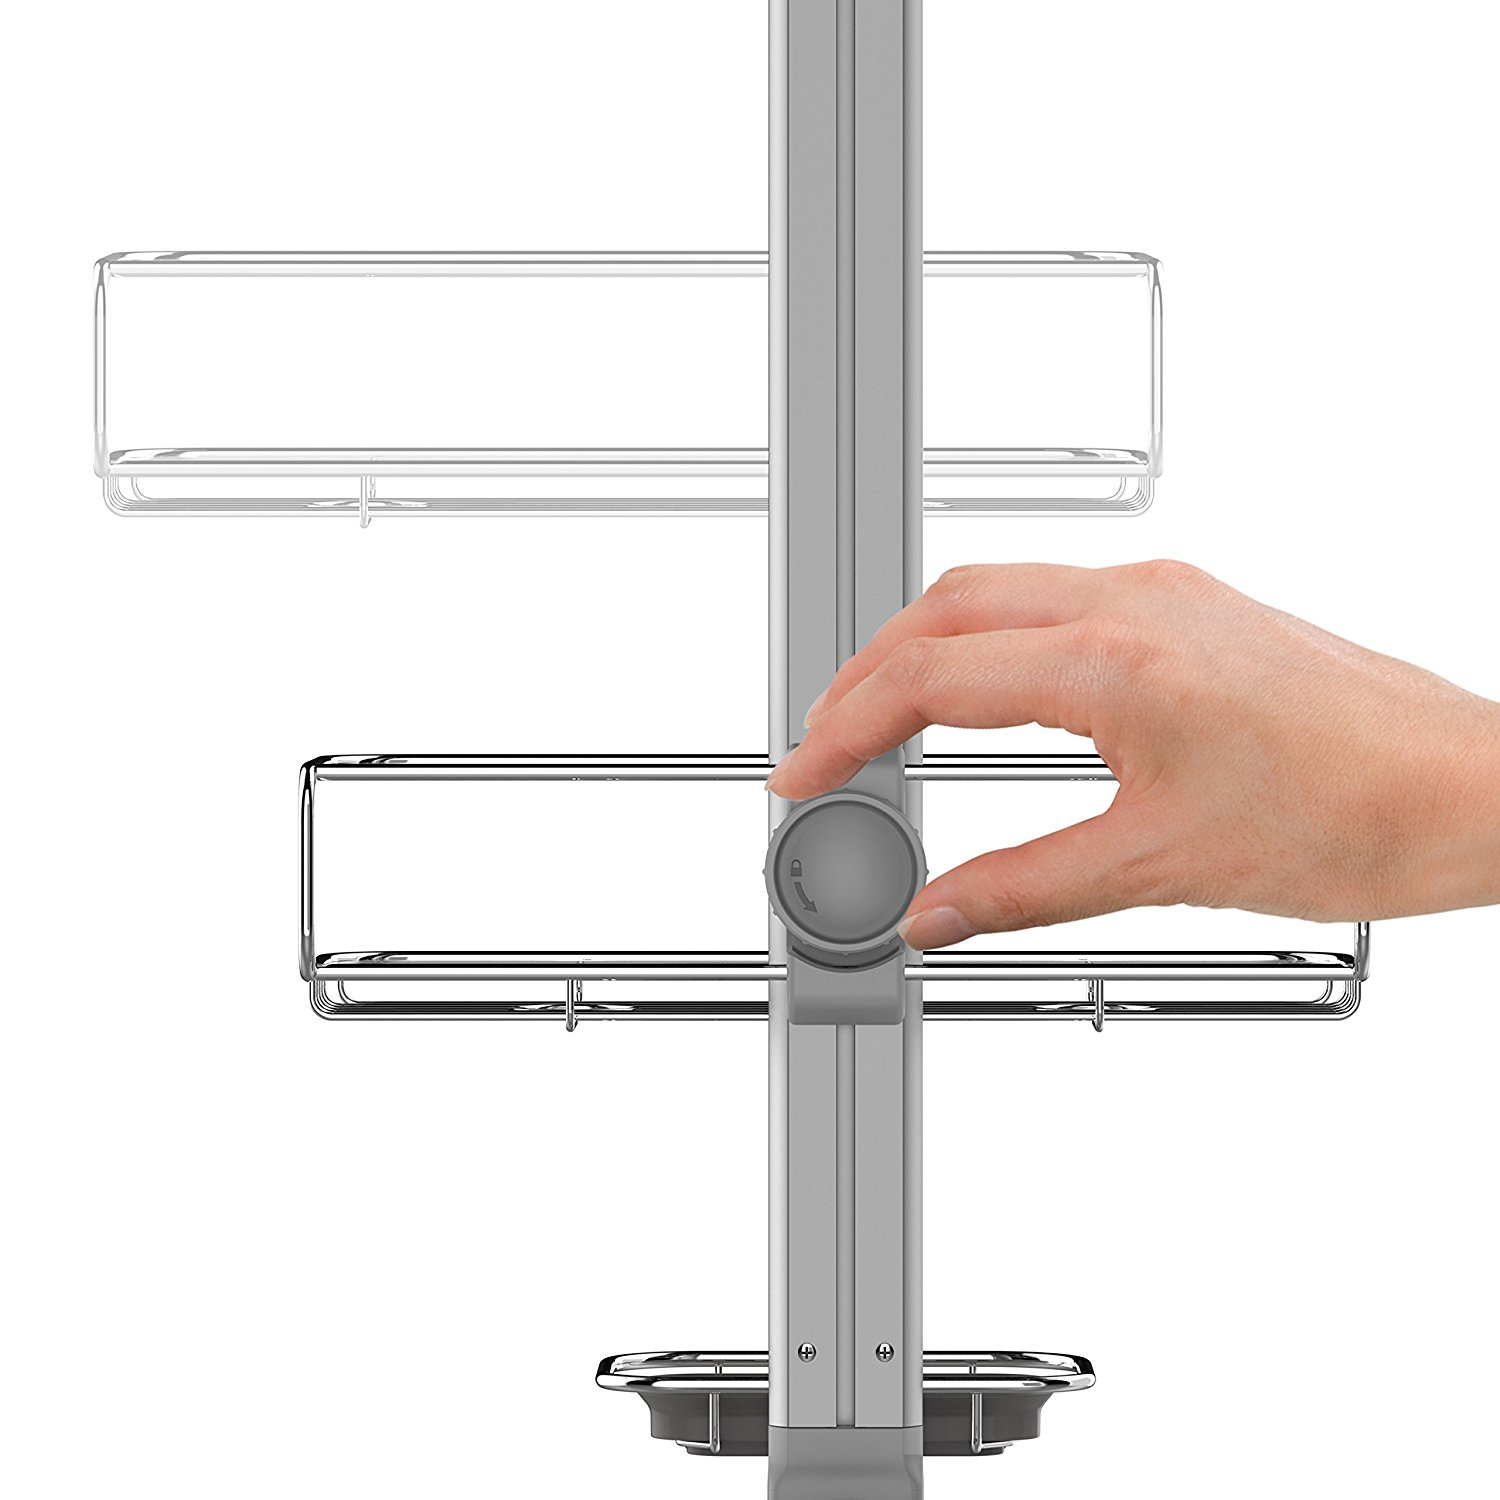 Shower Tension Rod Caddy | Simplehuman Shower Caddy | Simplehuman Shower Caddy Replacement Parts